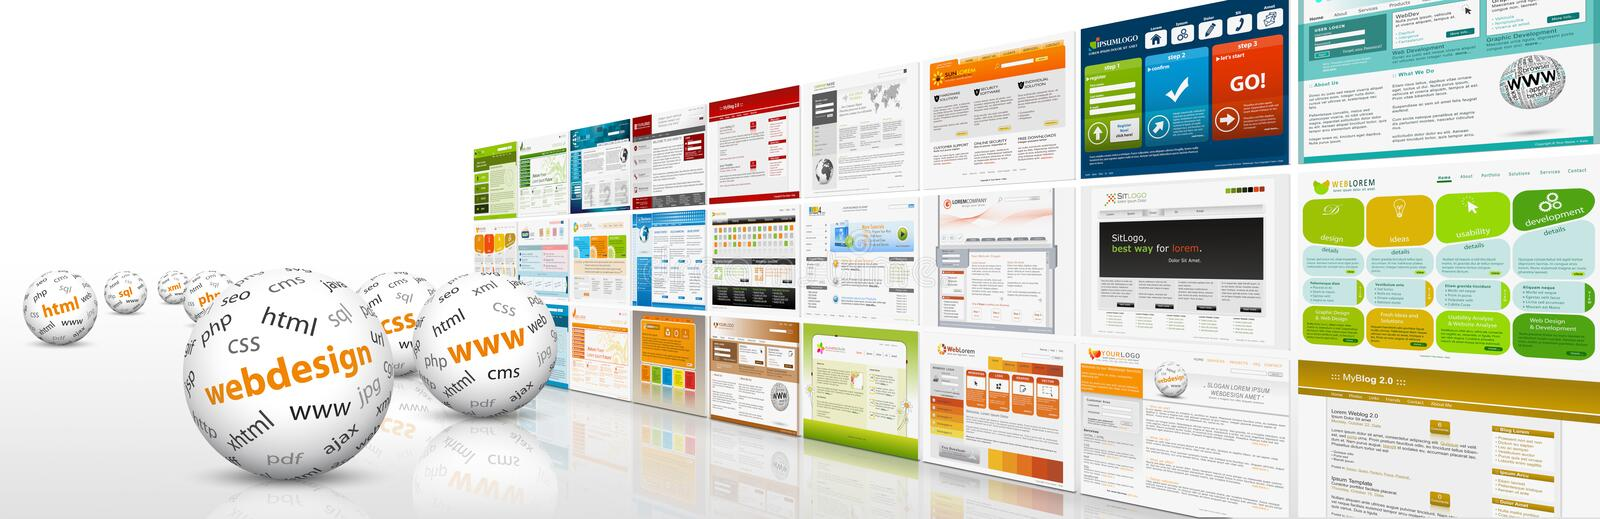 Horizontal Website Banner with Templates, Spheres and Abbreviati stock image